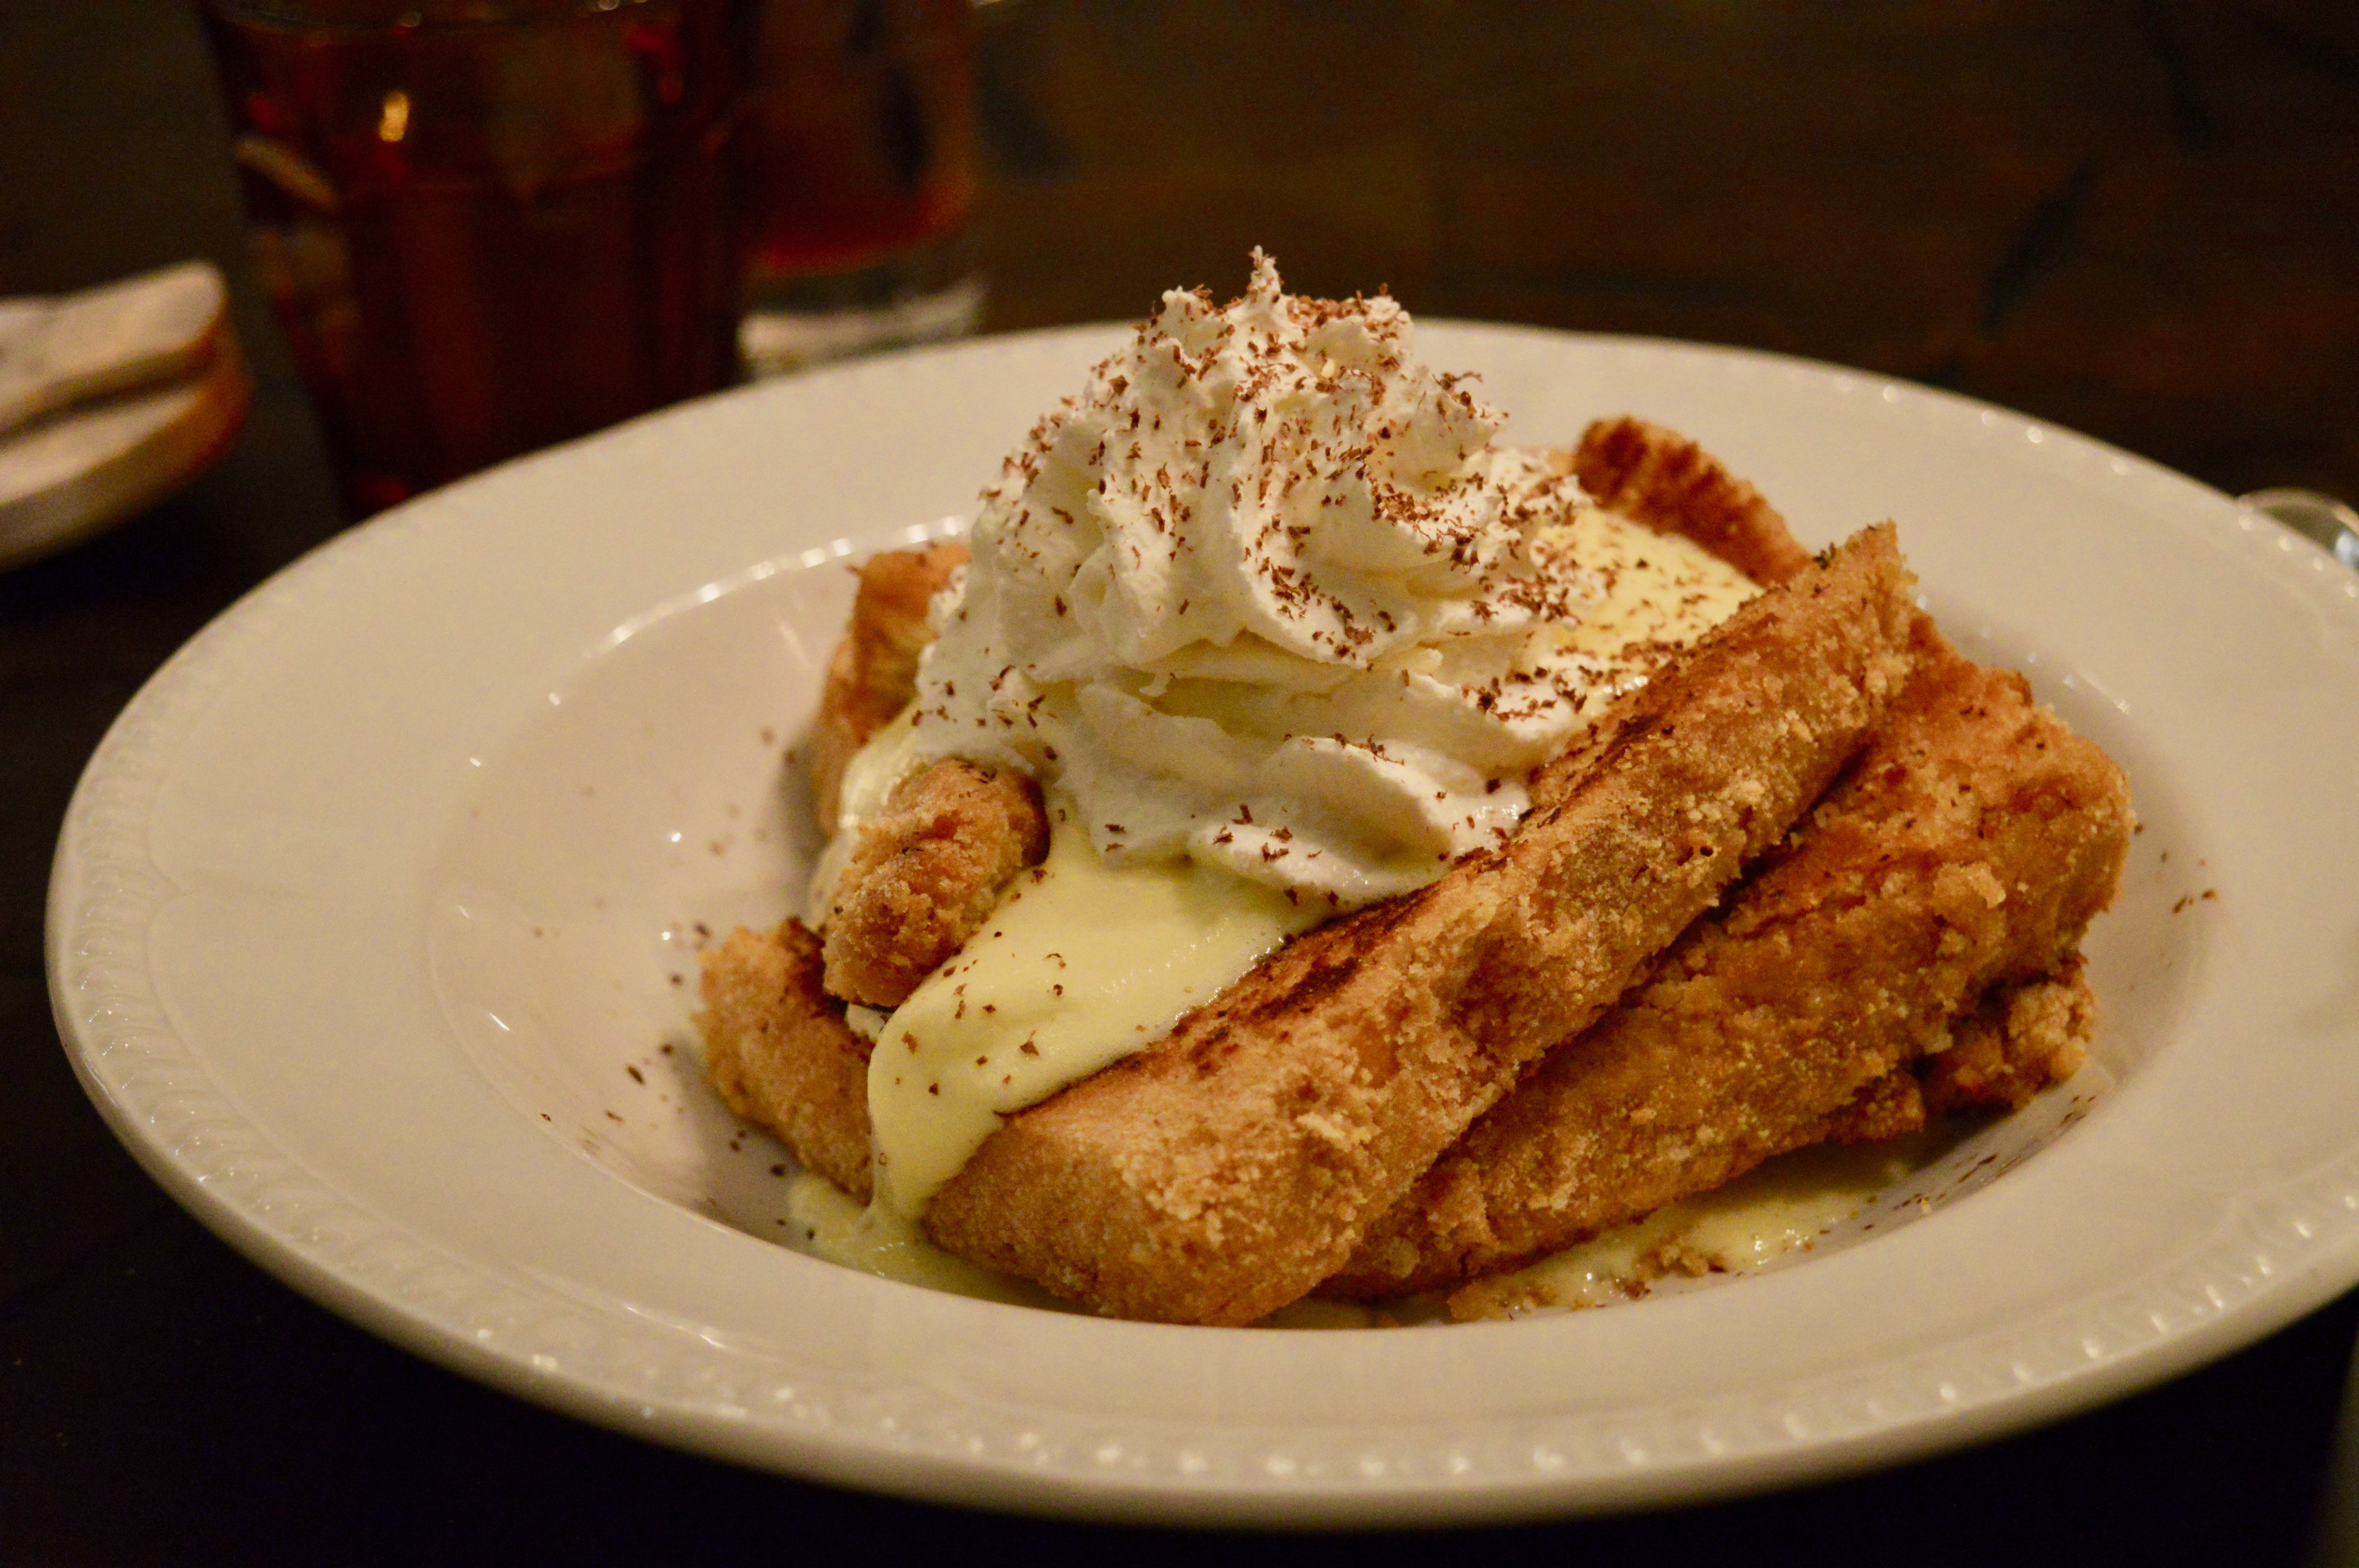 Ladyfinger French Toast | Mercato Della Pescheria PostTurkey Day Thanksgiving Brunch | Italian dining served family style with the Las Vegas Influencers | The Venetian Las Vegas | Elle Blonde Luxury Lifestyle Destination Blog